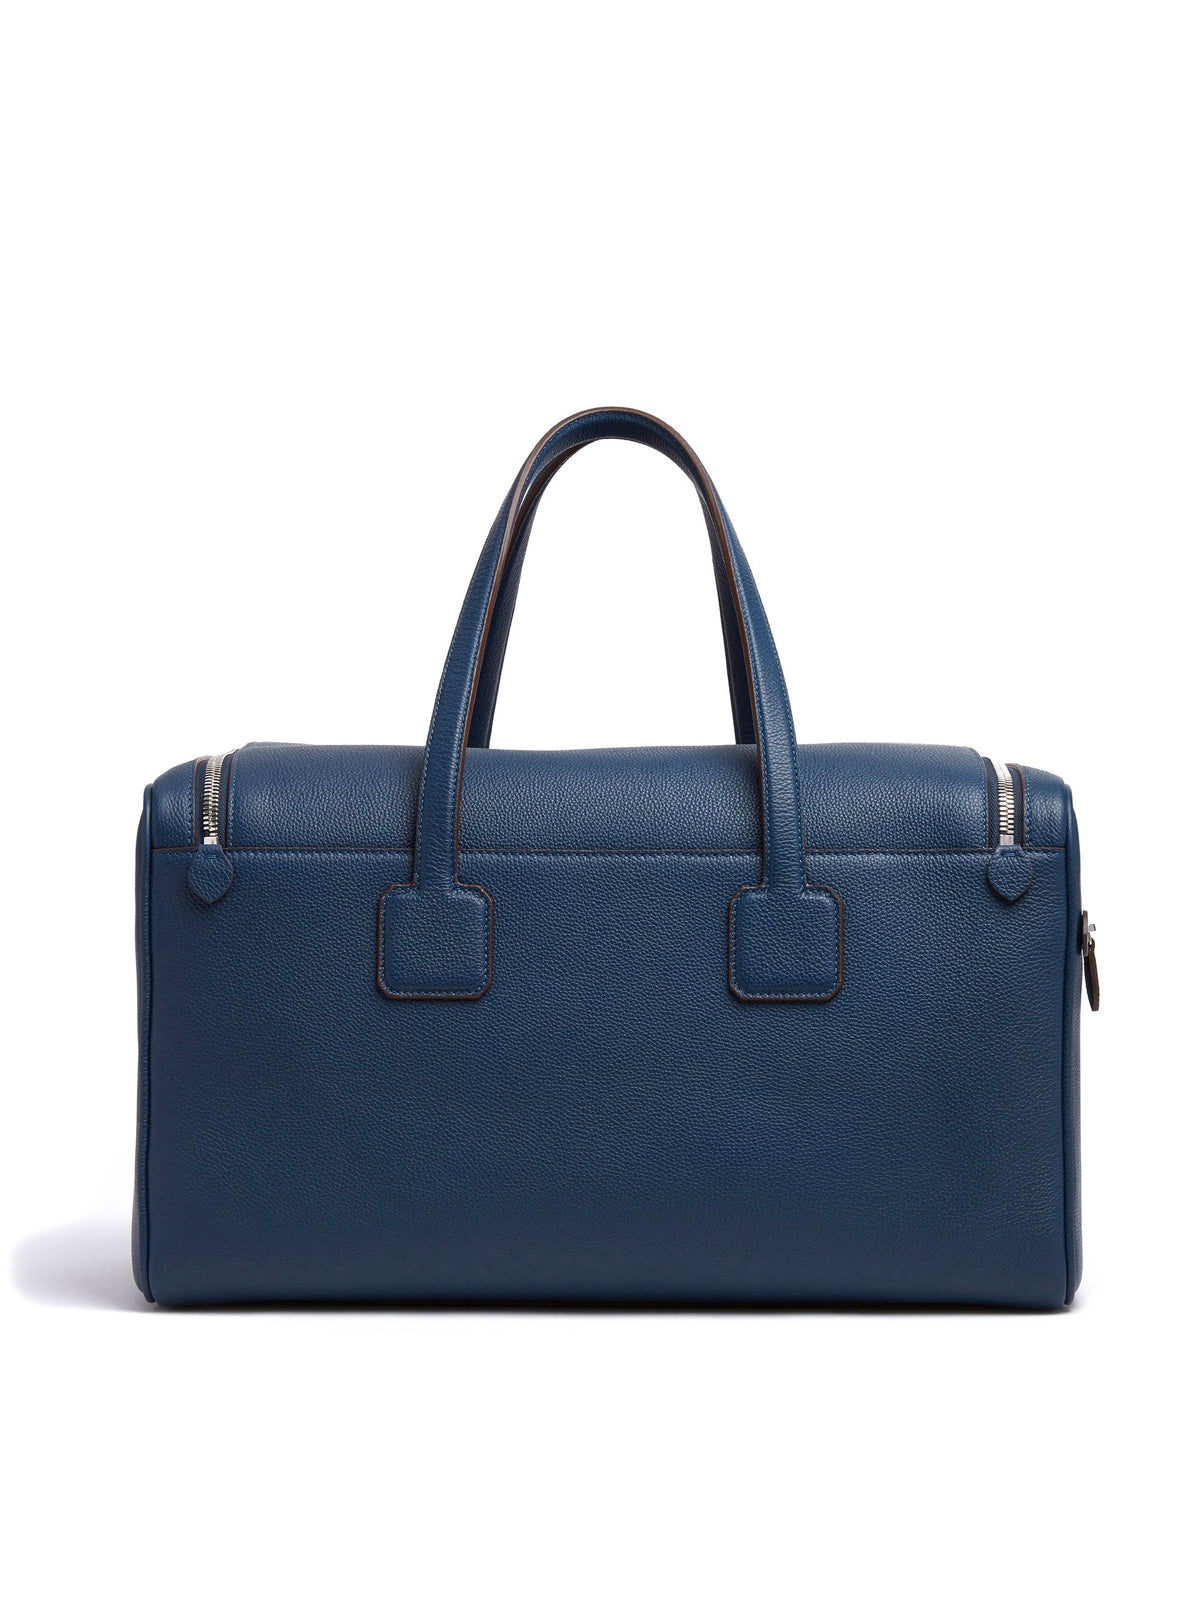 Mark Cross Henry Leather Sports Duffle Bag Tumbled Grain Navy Back